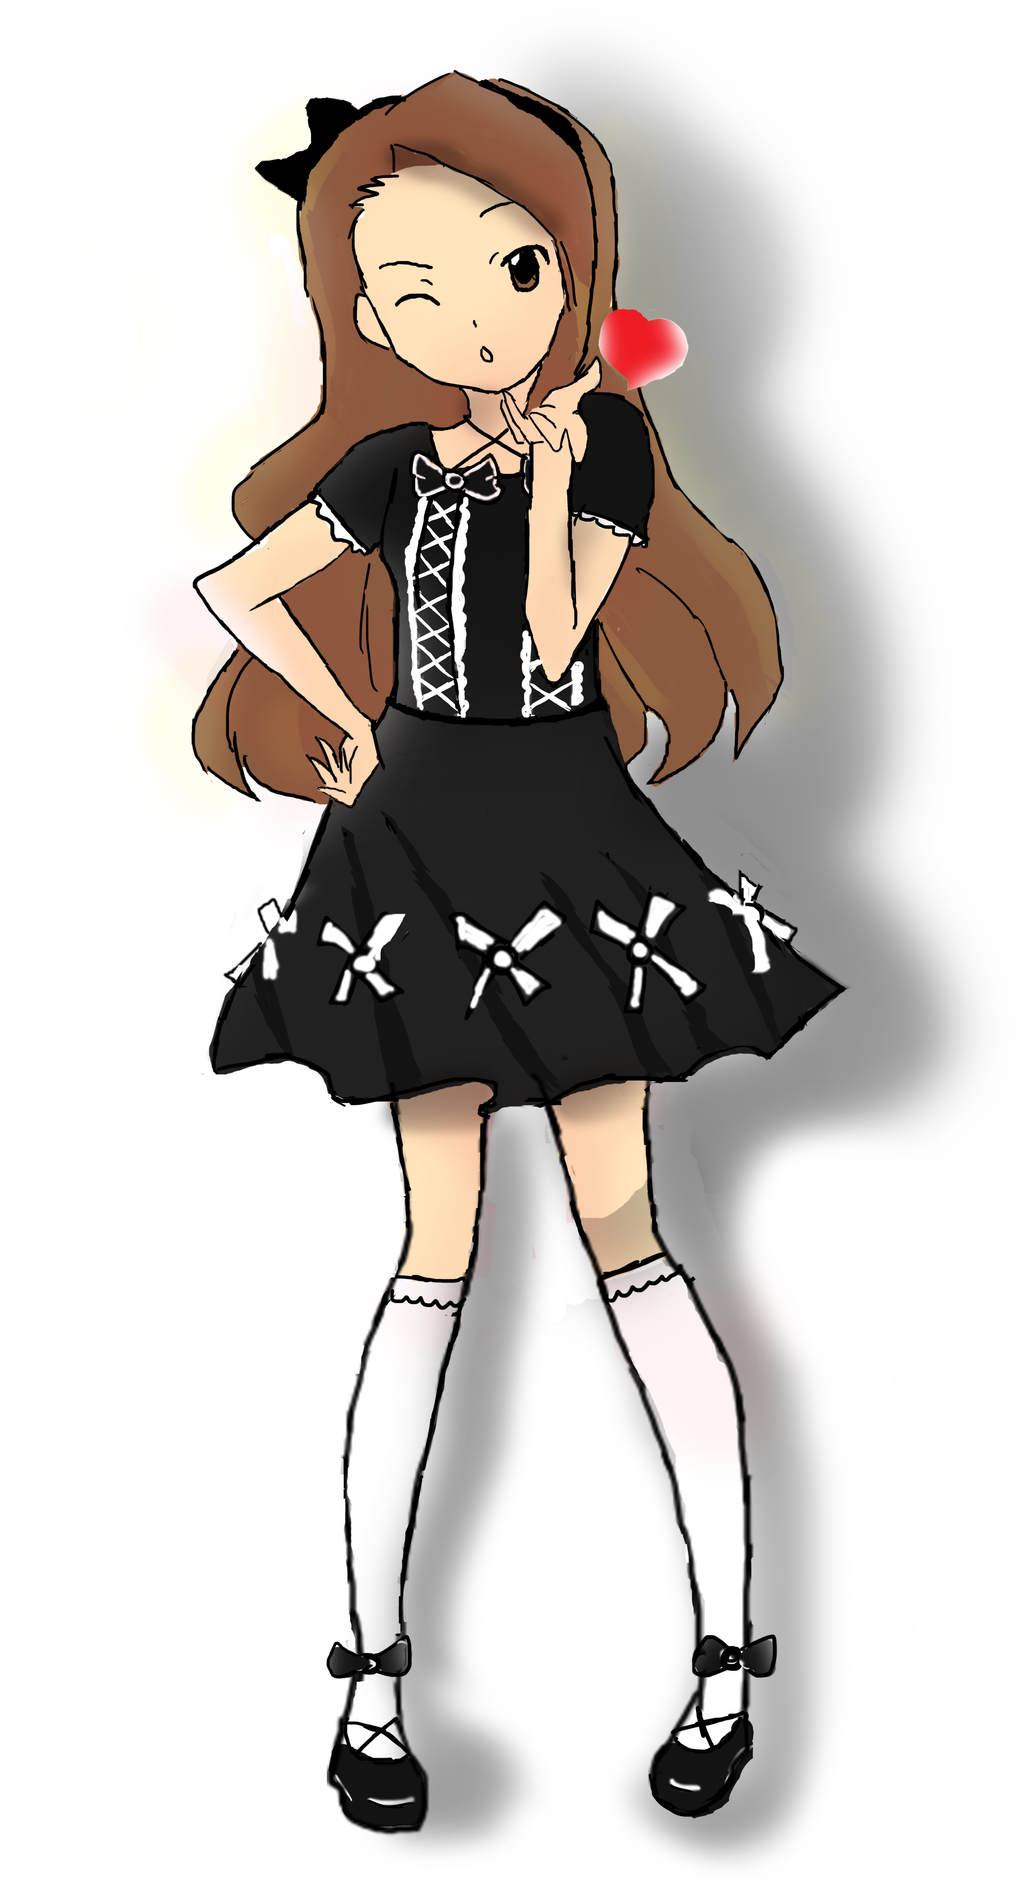 Iori Idolmaster:Request by HaxGodJet